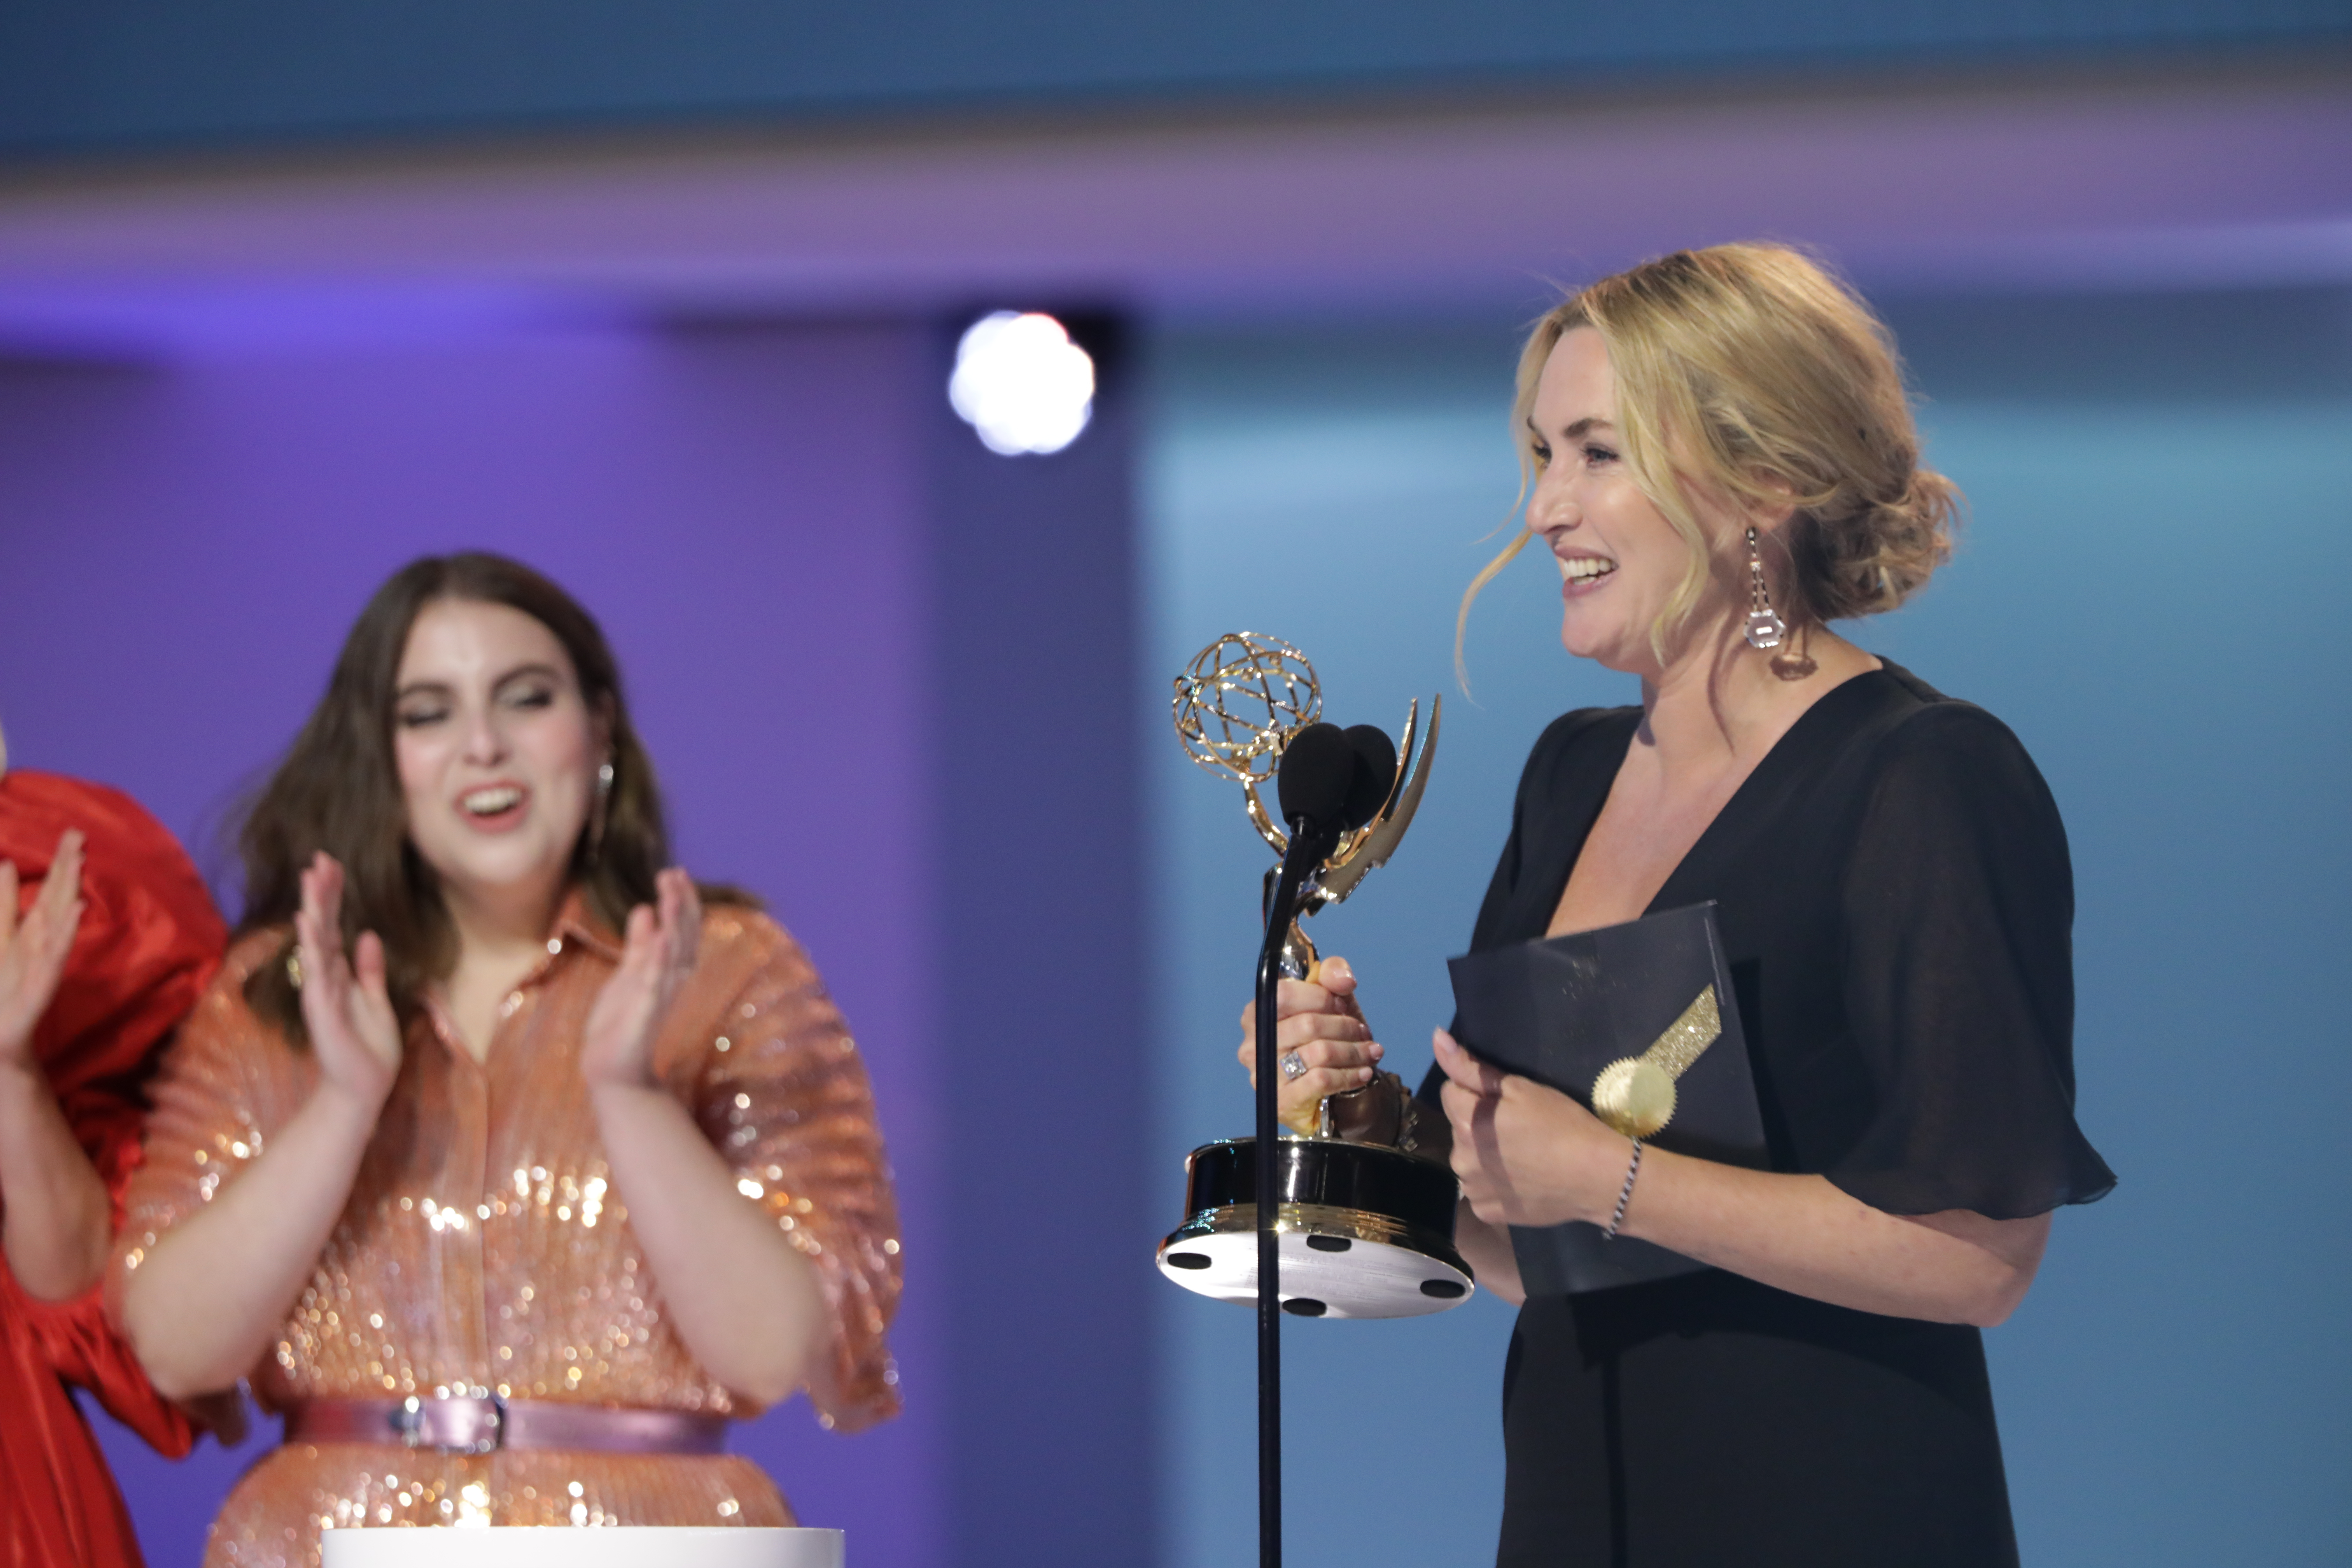 LOS ANGELES - SEPTEMBER 19: Kate Winslet from 'Mare of Easttown' appears at the 73RD EMMY AWARDS, broadcast Sunday, Sept. 19 (8:00-11:00 PM, live ET/5:00-8:00 PM, live PT) on the CBS Television Network and available to stream live and on demand on Paramount+. (Photo by Cliff Lipson/CBS via Getty Images)